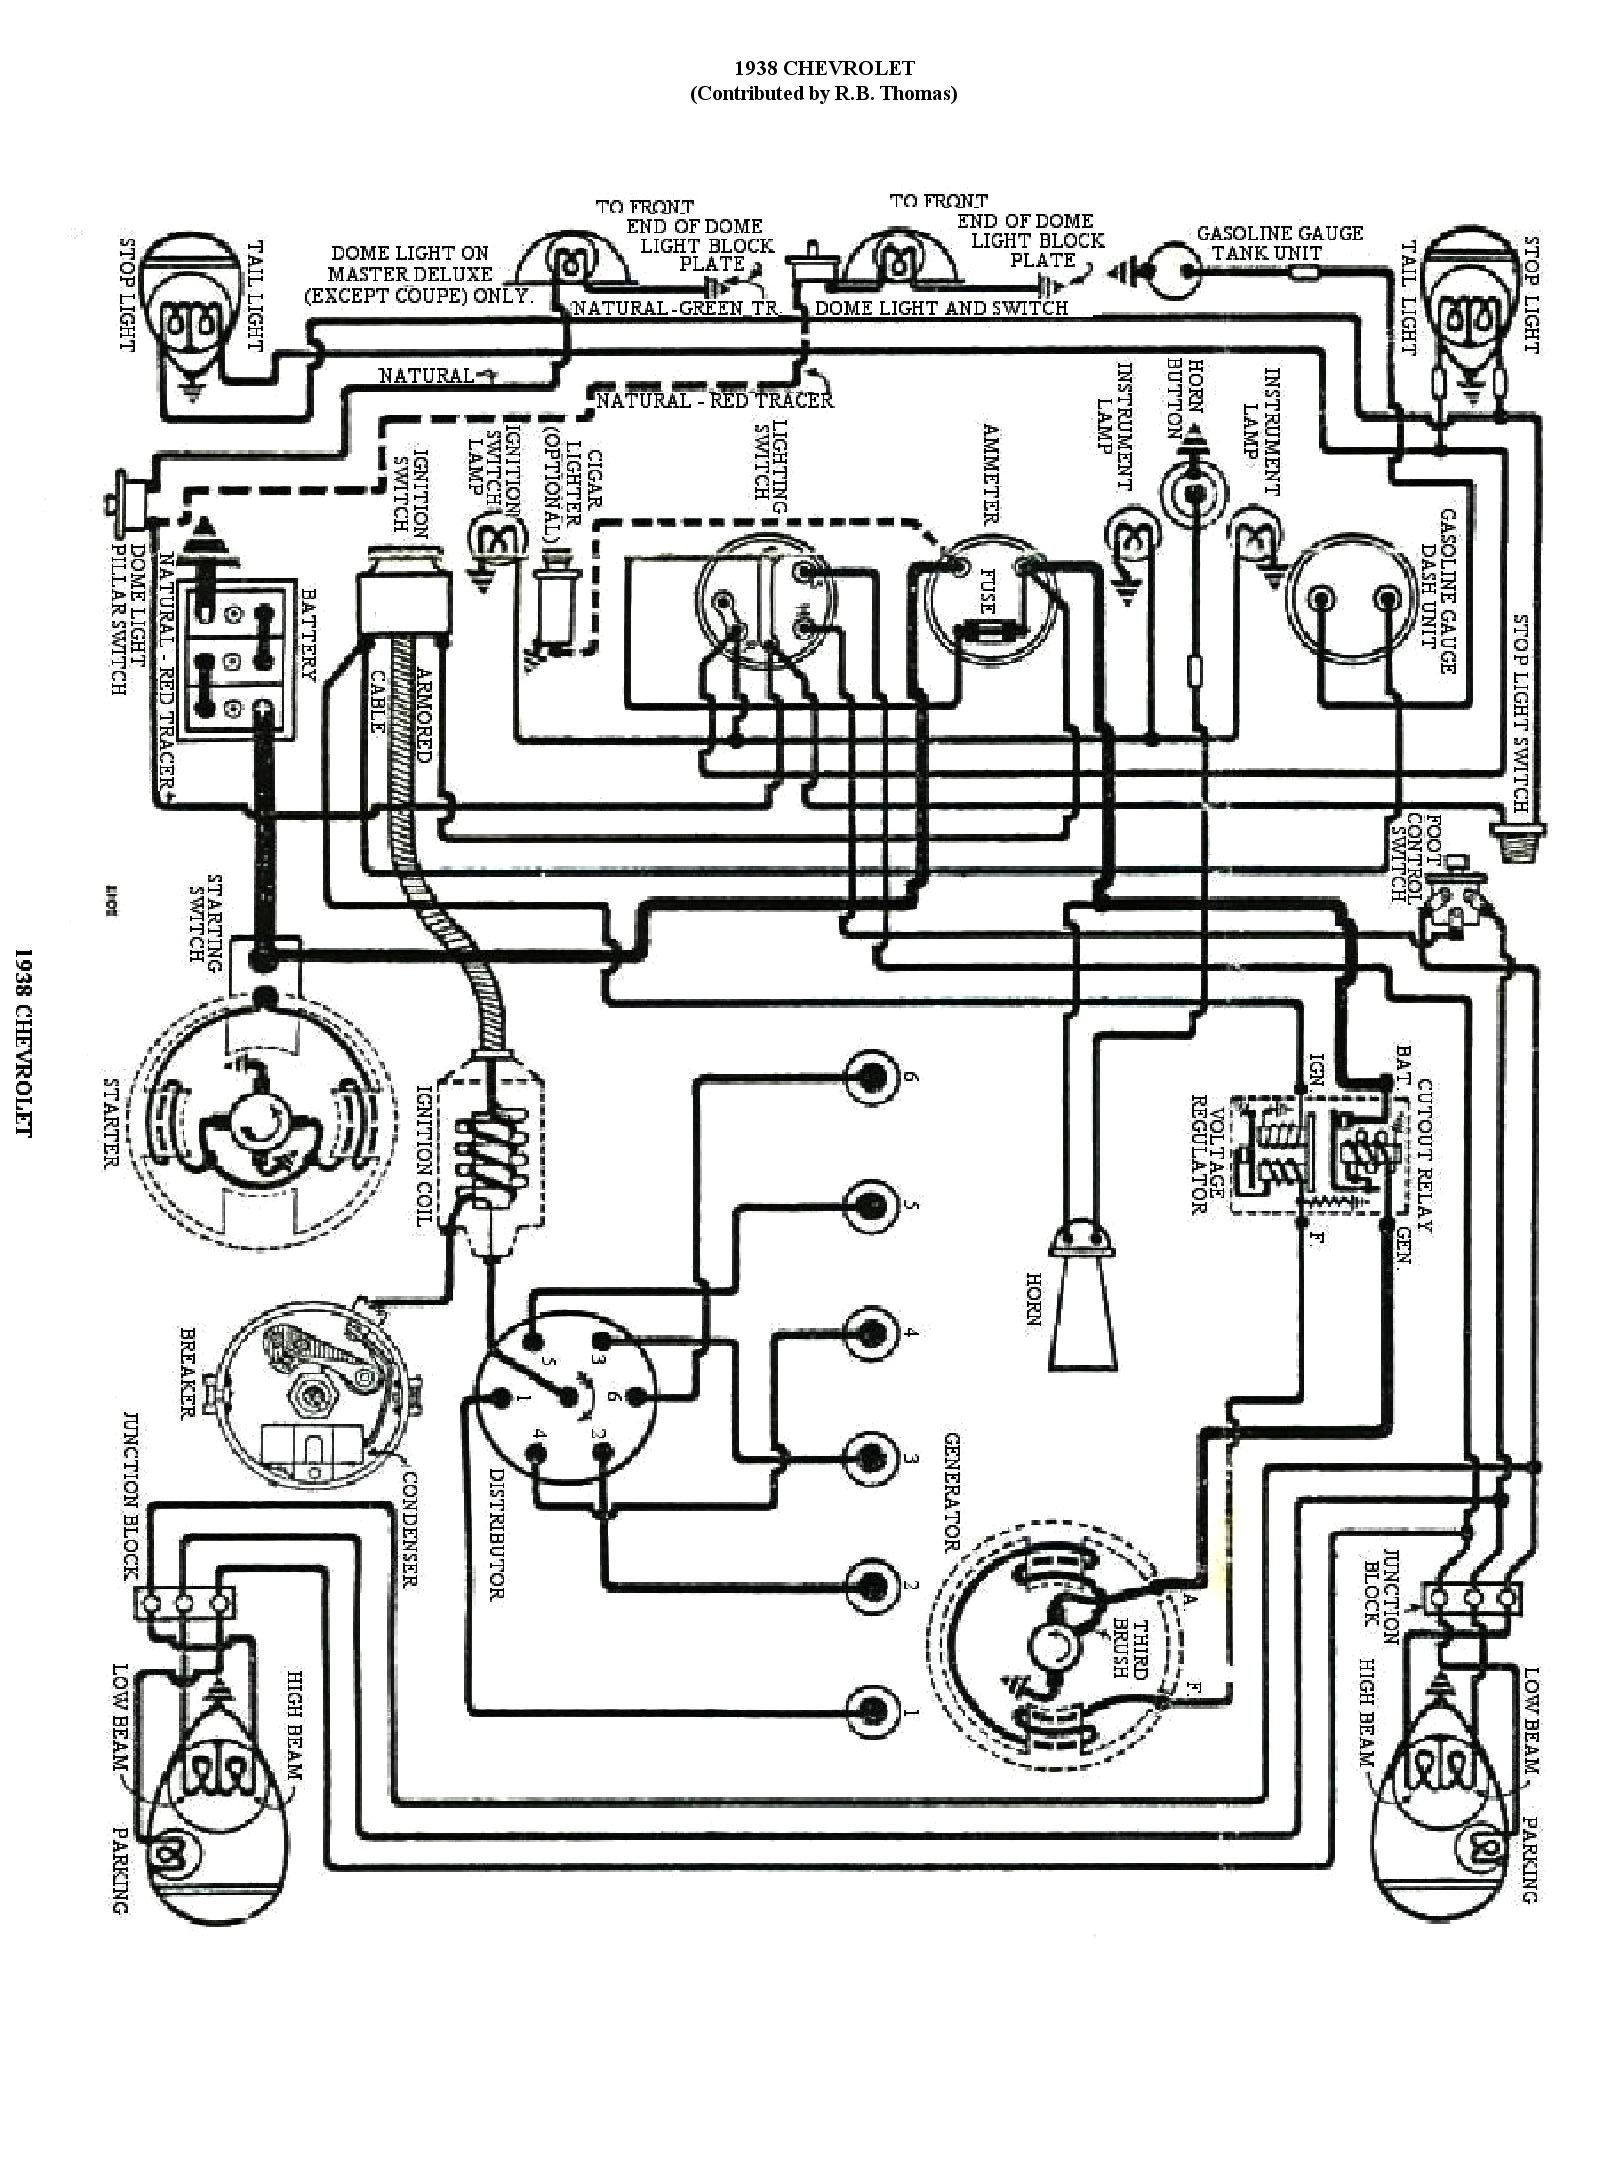 38wiring chevy wiring diagrams chevrolet wiring harness at gsmportal.co